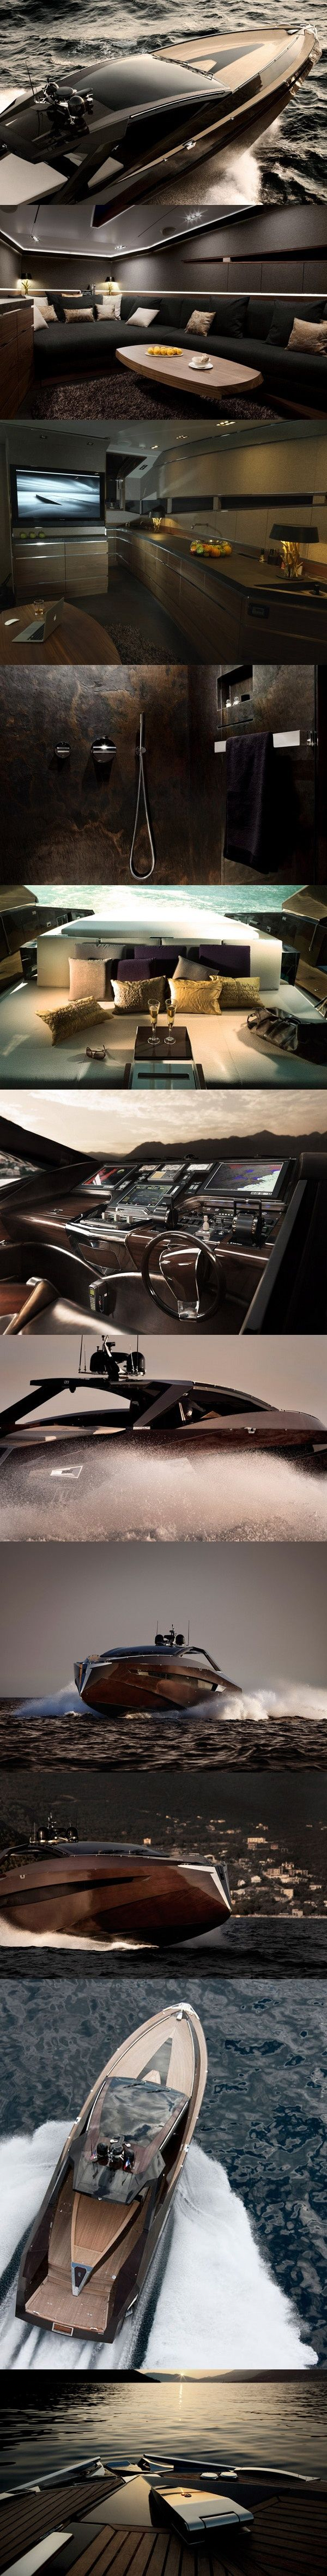 Art of Kinetik Hedonist Yacht, Luxury How to earn $3000 per month? Get #Paid Taking Surveys at Home! #Cash #money #profit